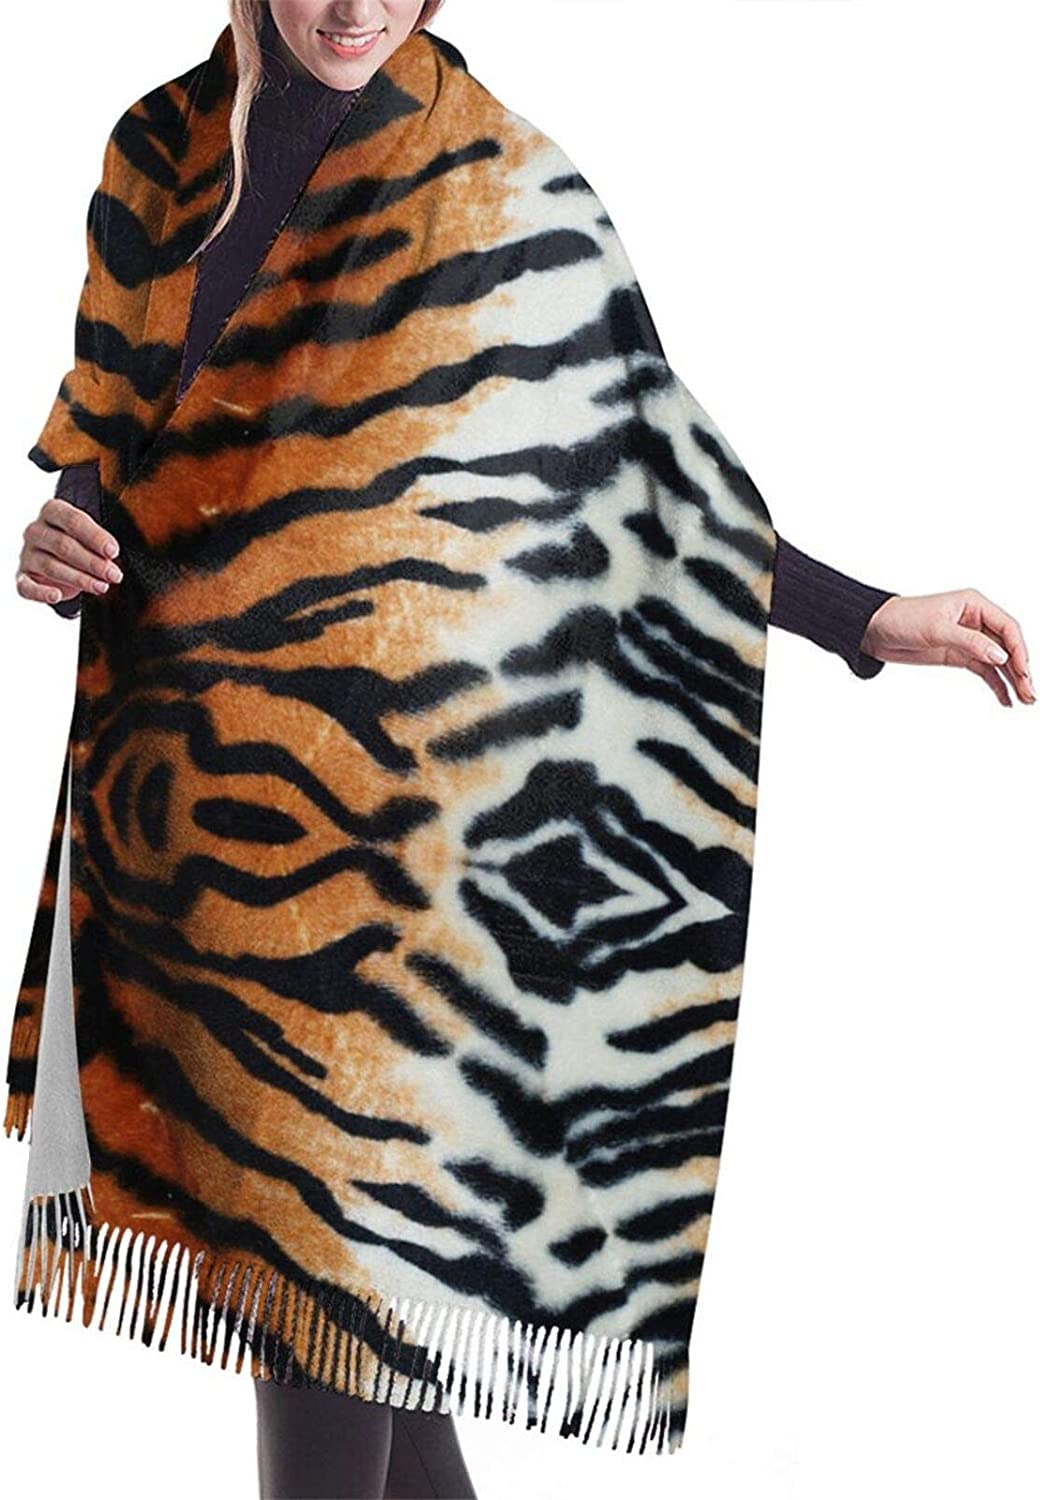 Tigers Pattern Cashmere Feel Scarf Lightweight Soft Scarfs For Boys Girls Creative Warm Cold Weather Blanket Scarf